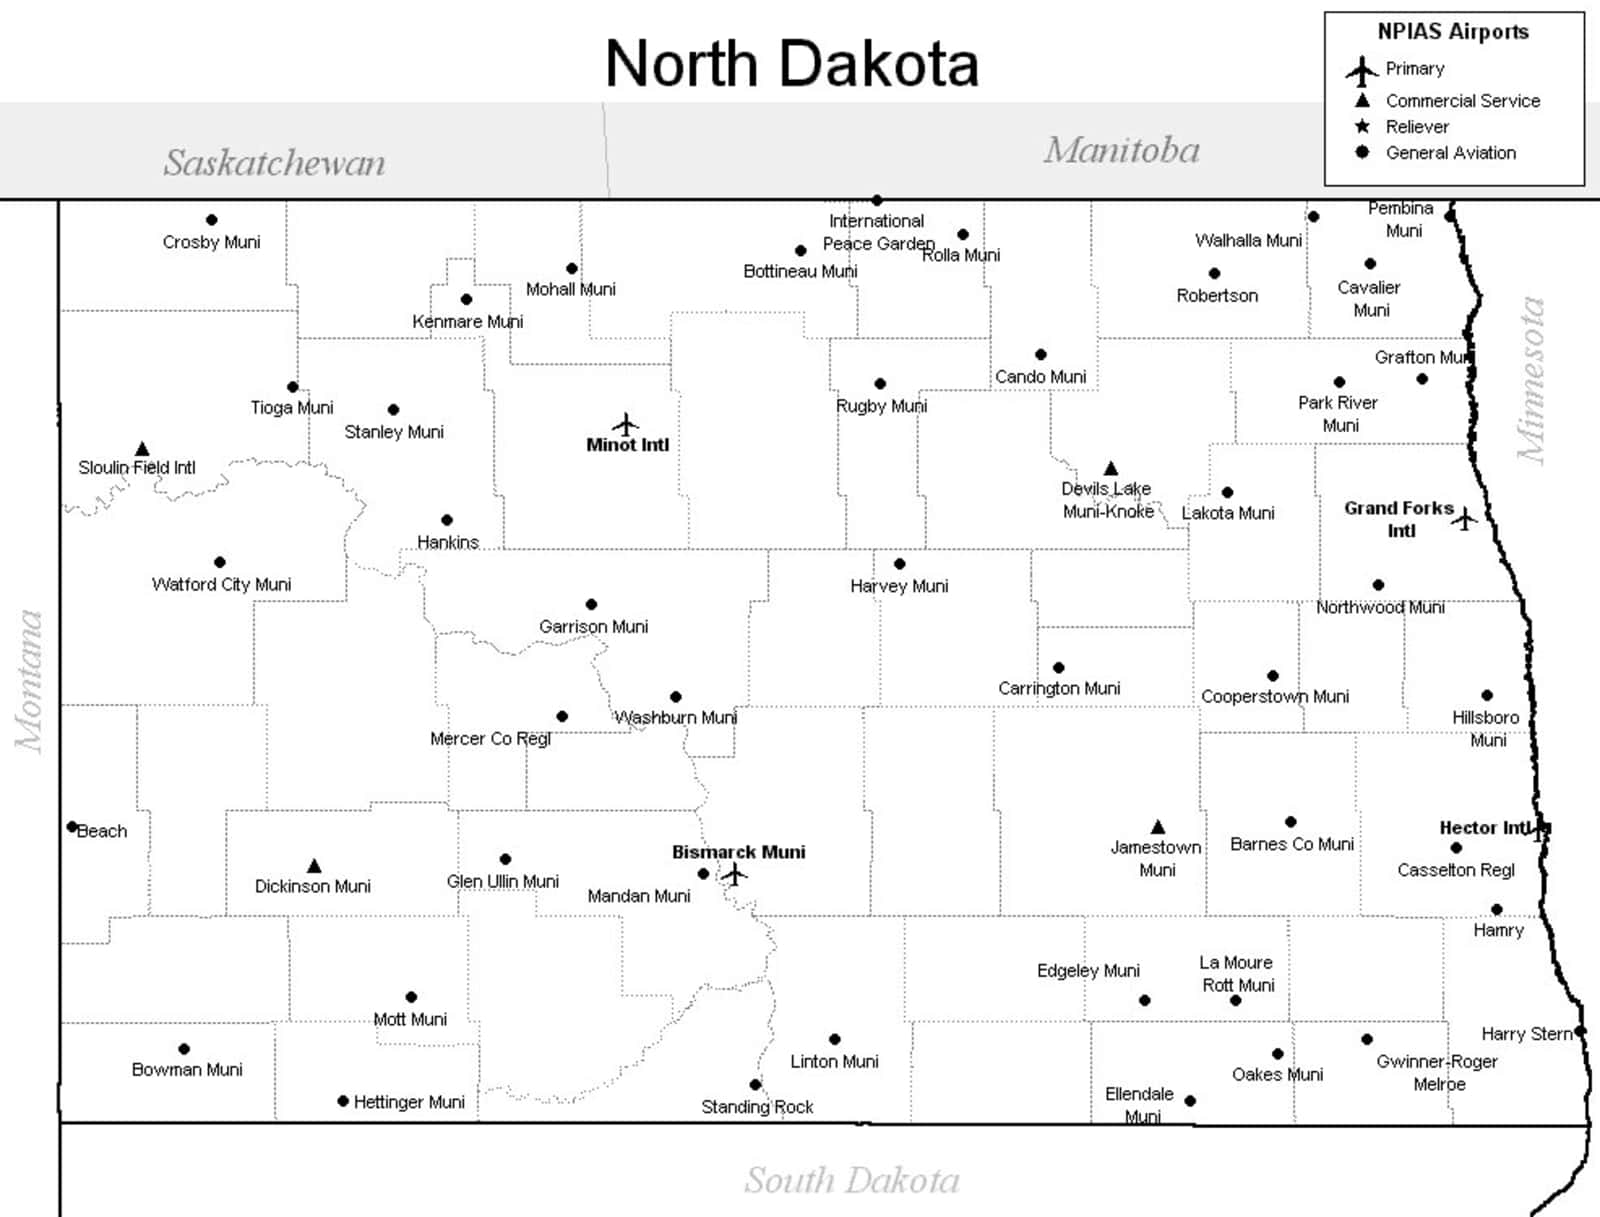 North Dakota Airport Map - North Dakota Airports on carrington nd map, foster county nd map, carrington north dakota weather, carrington nd weather, carrington north dakota hotels, fortuna nd map, mohall nd map, kensal nd map, cavalier nd map,